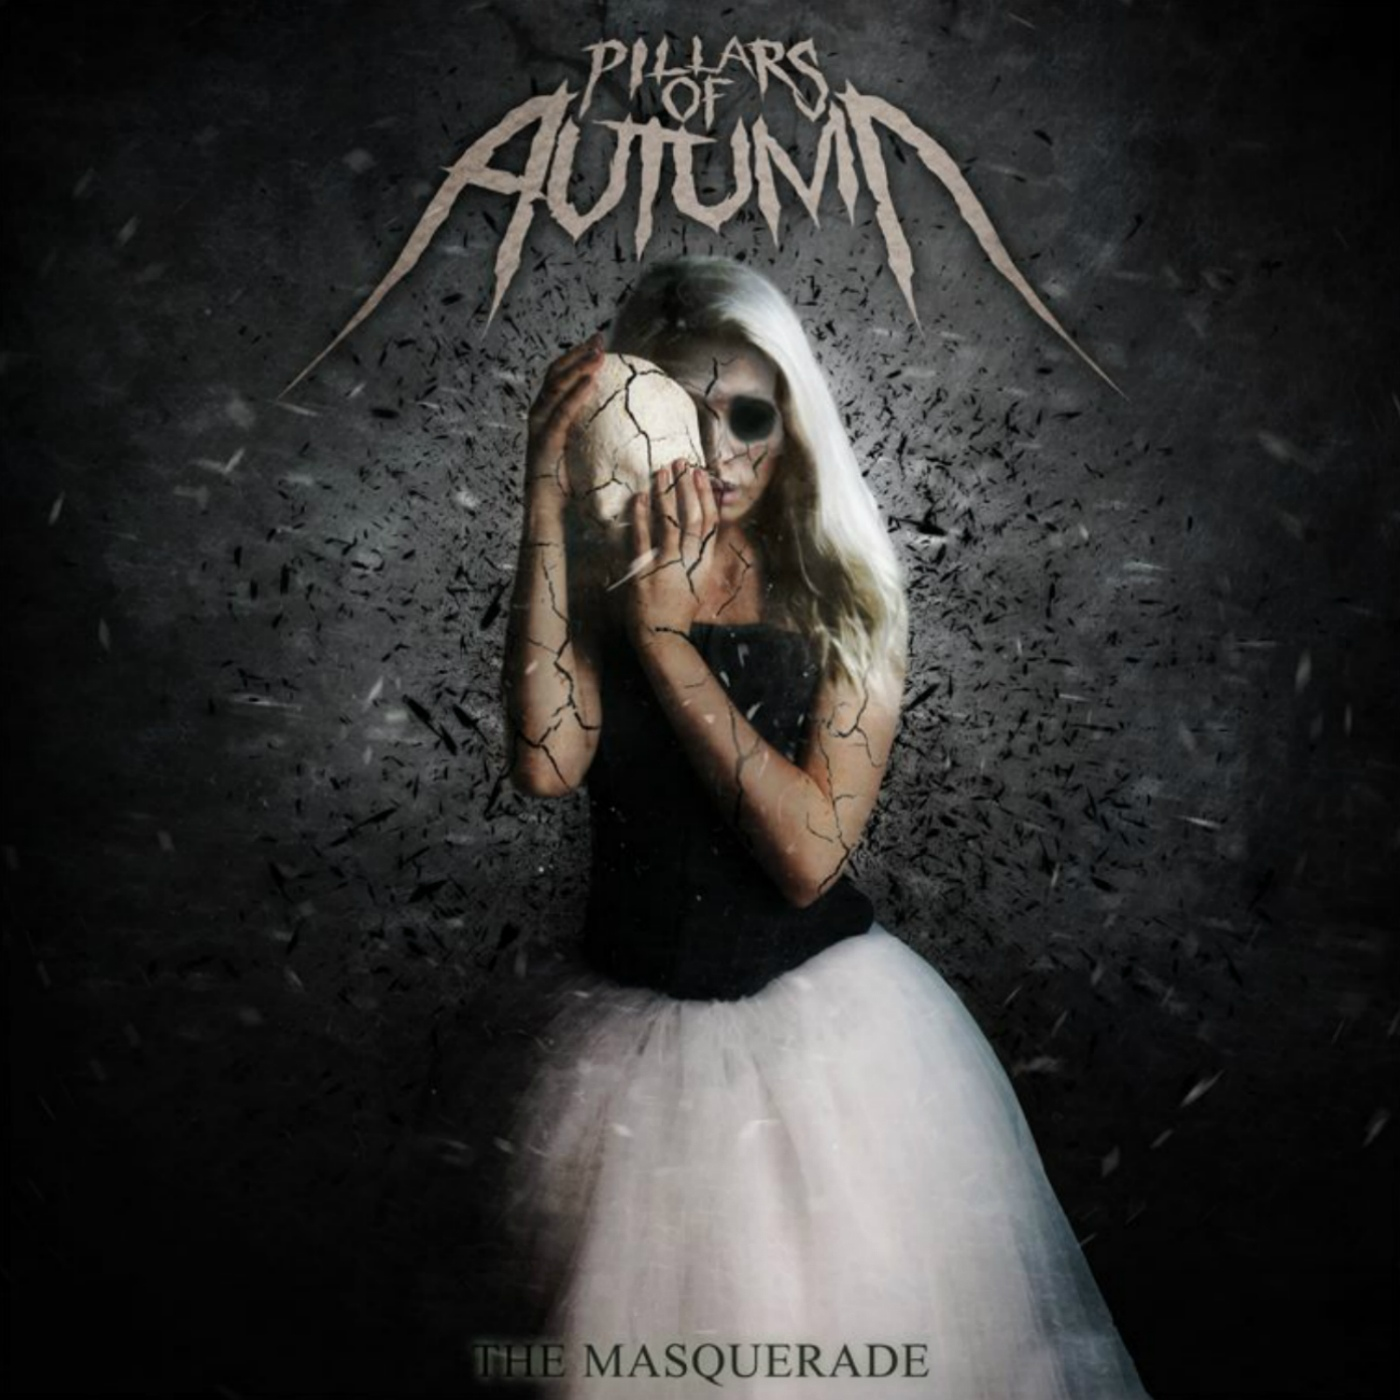 Pillars Of Autumn - The Masquerade (2019)